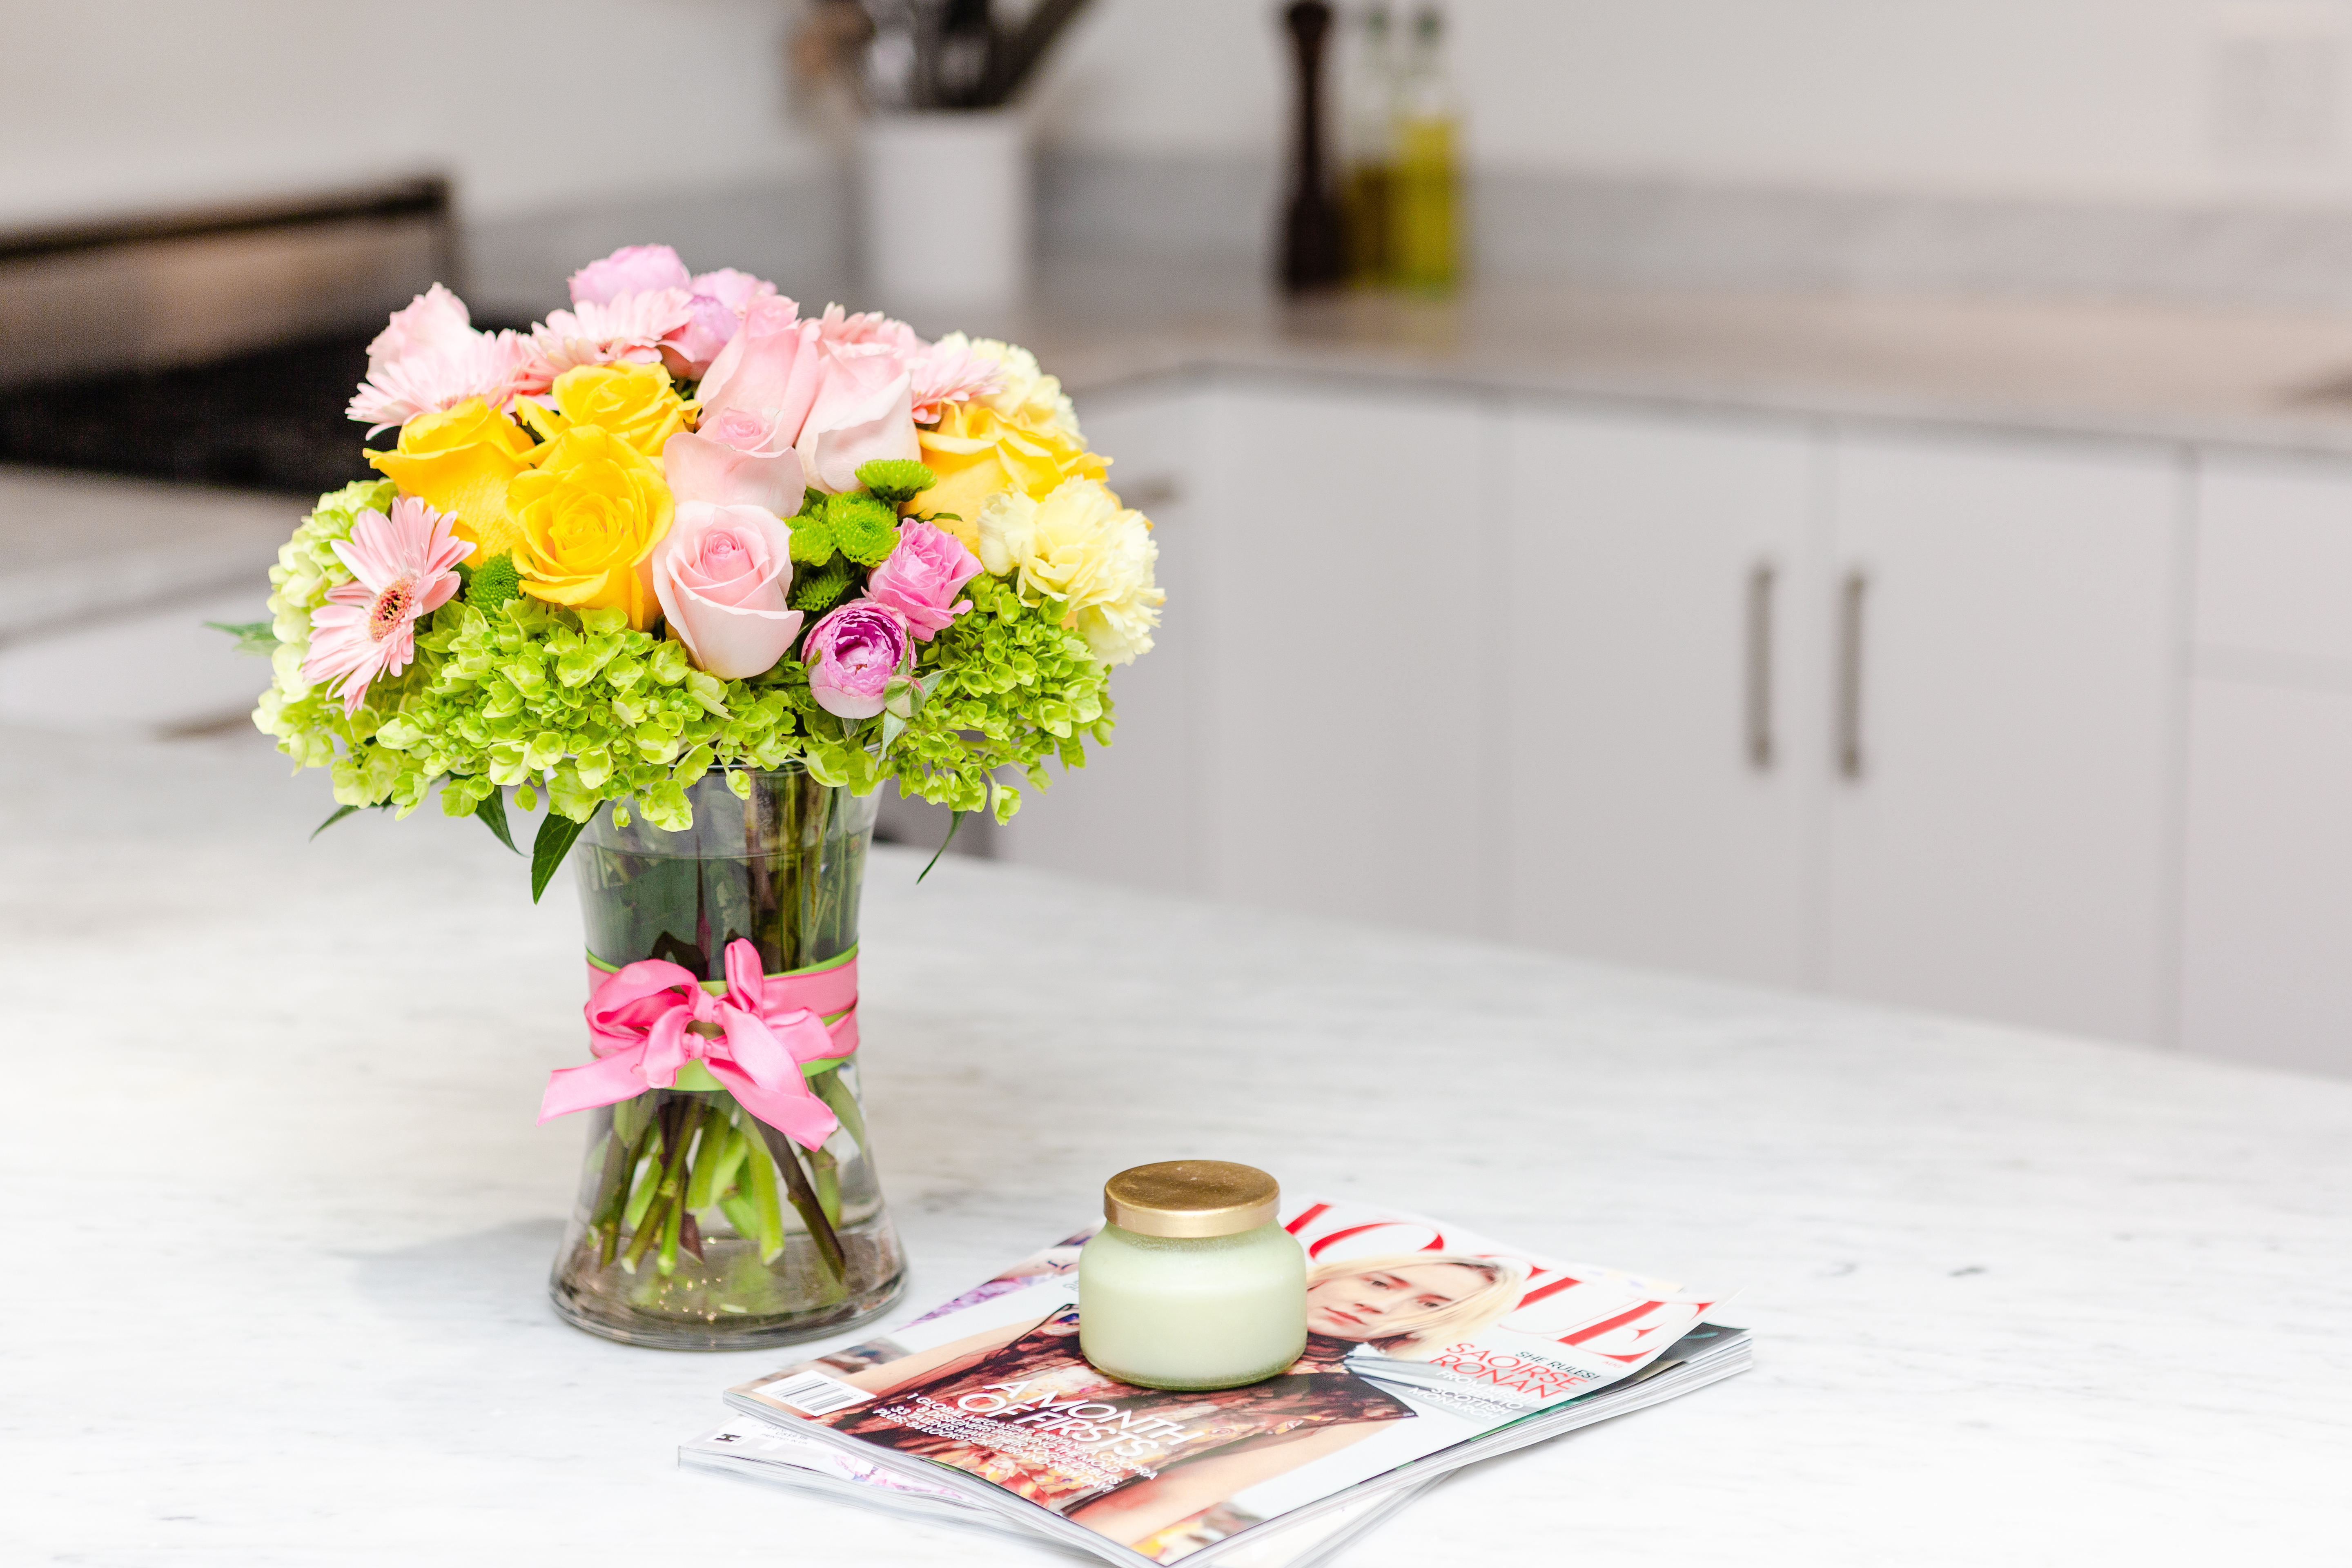 pink and yellow roses with green hydrangea in clear vase on table with magazines